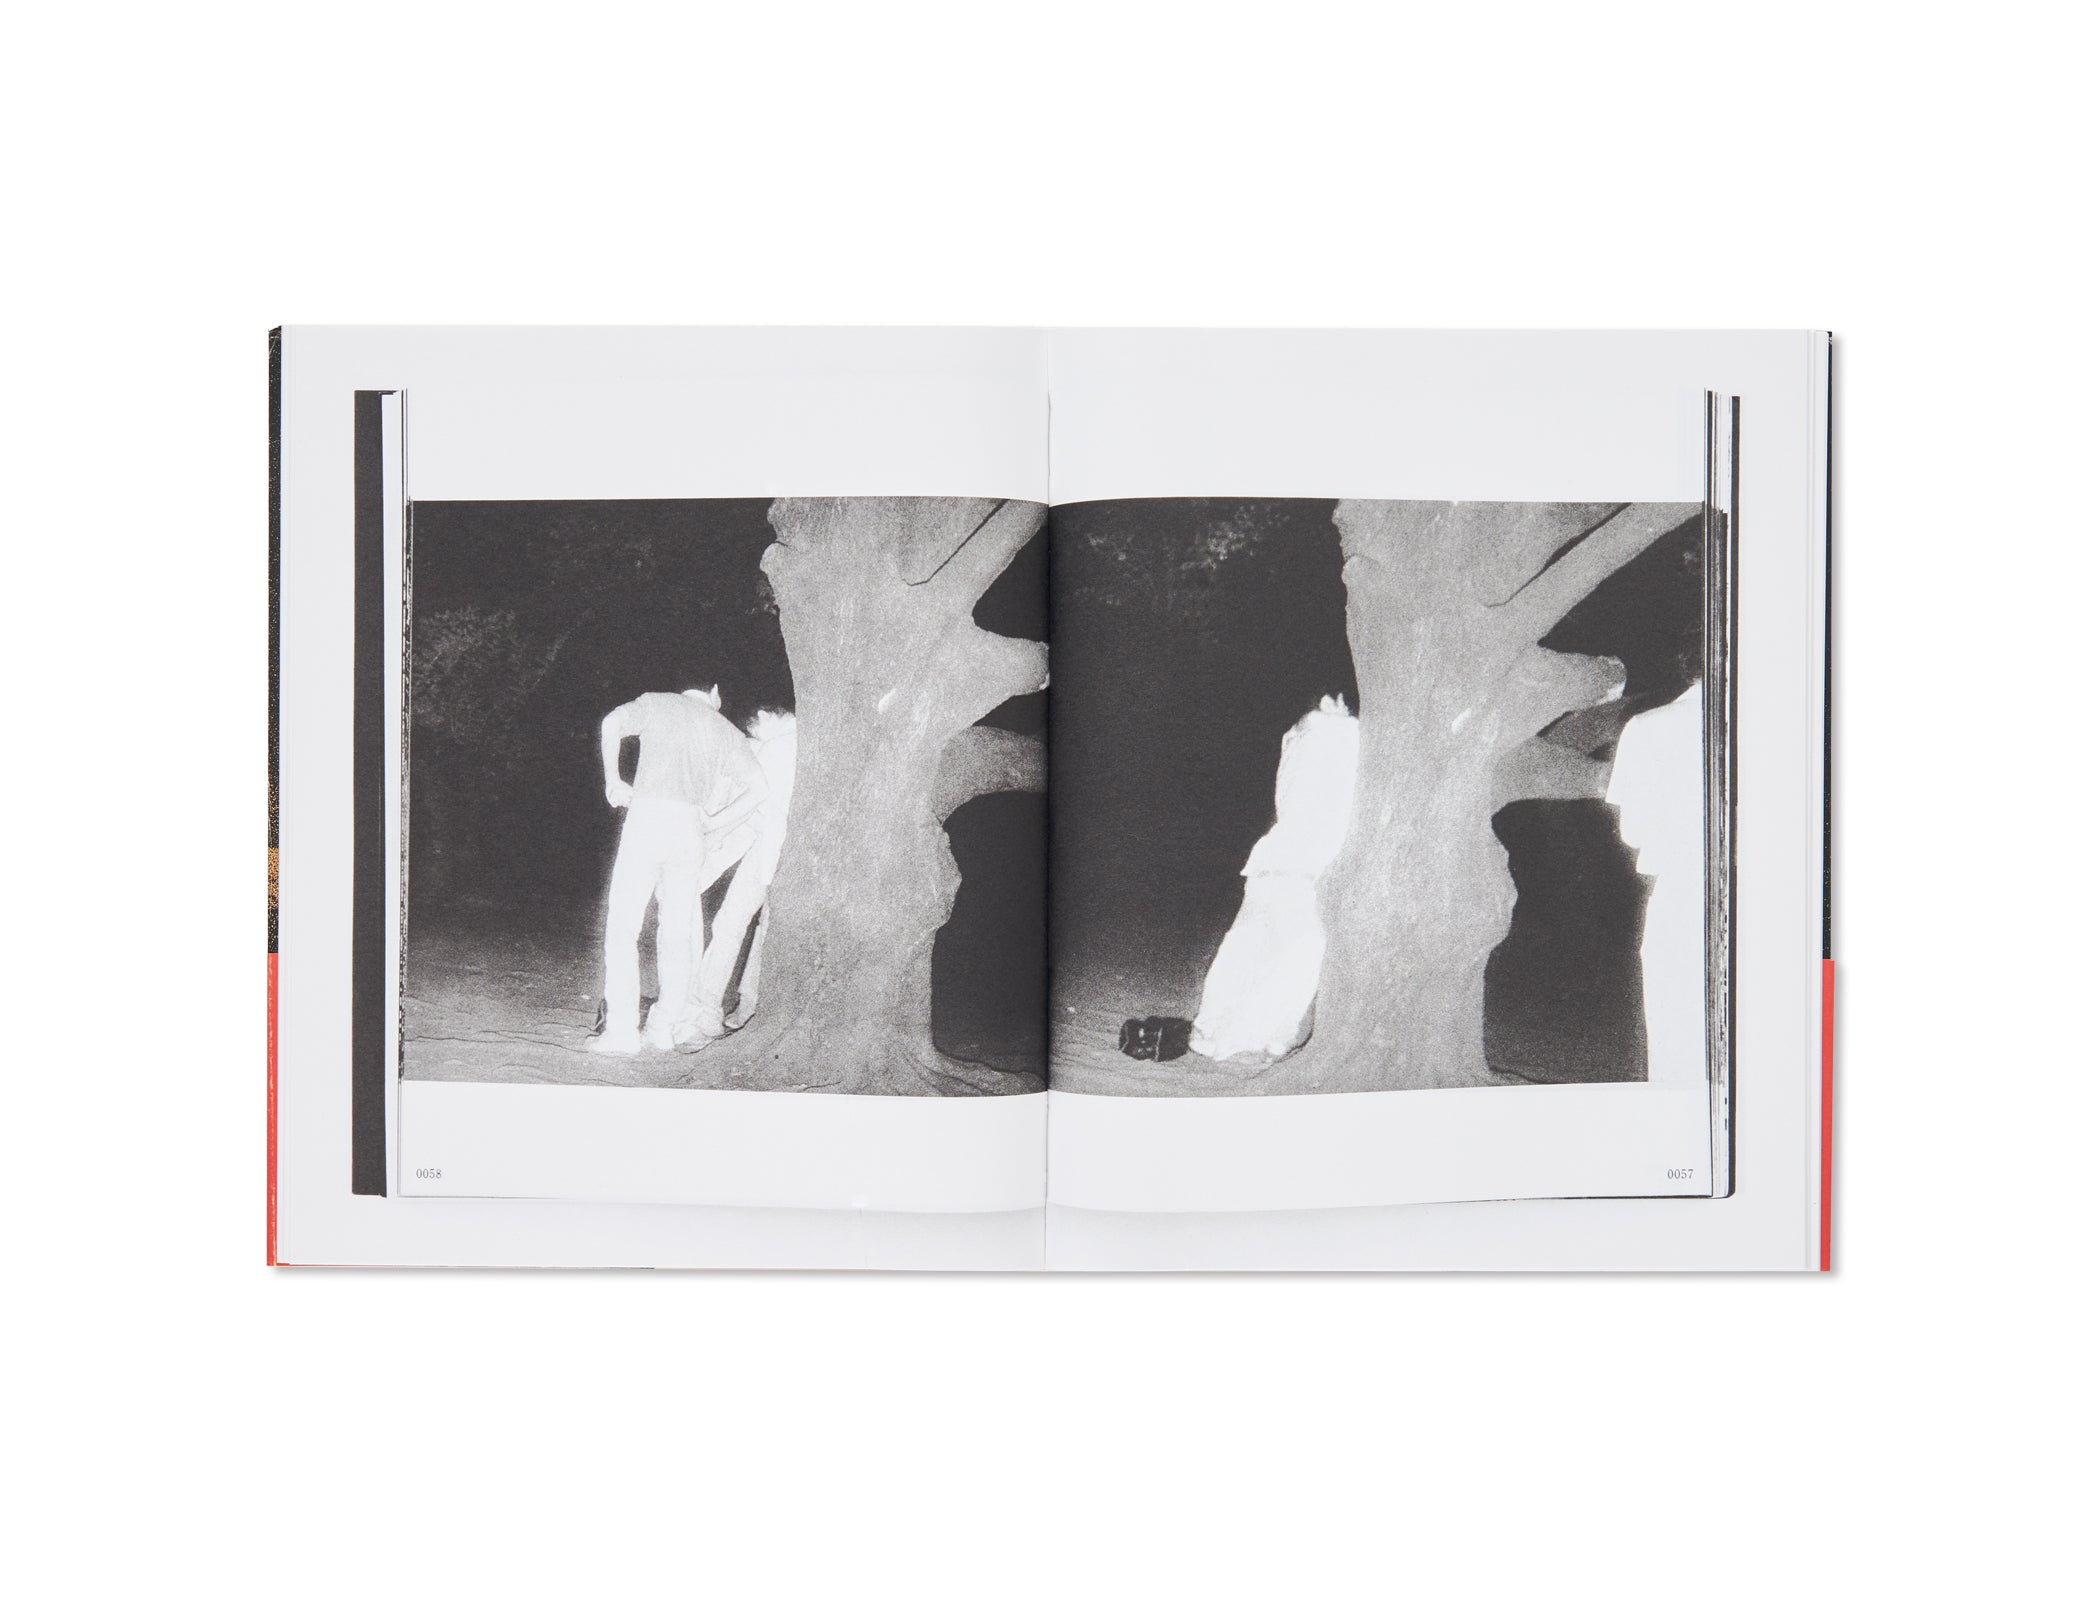 THE PARK by Kohei Yoshiyuki [SPECIAL EDITION]